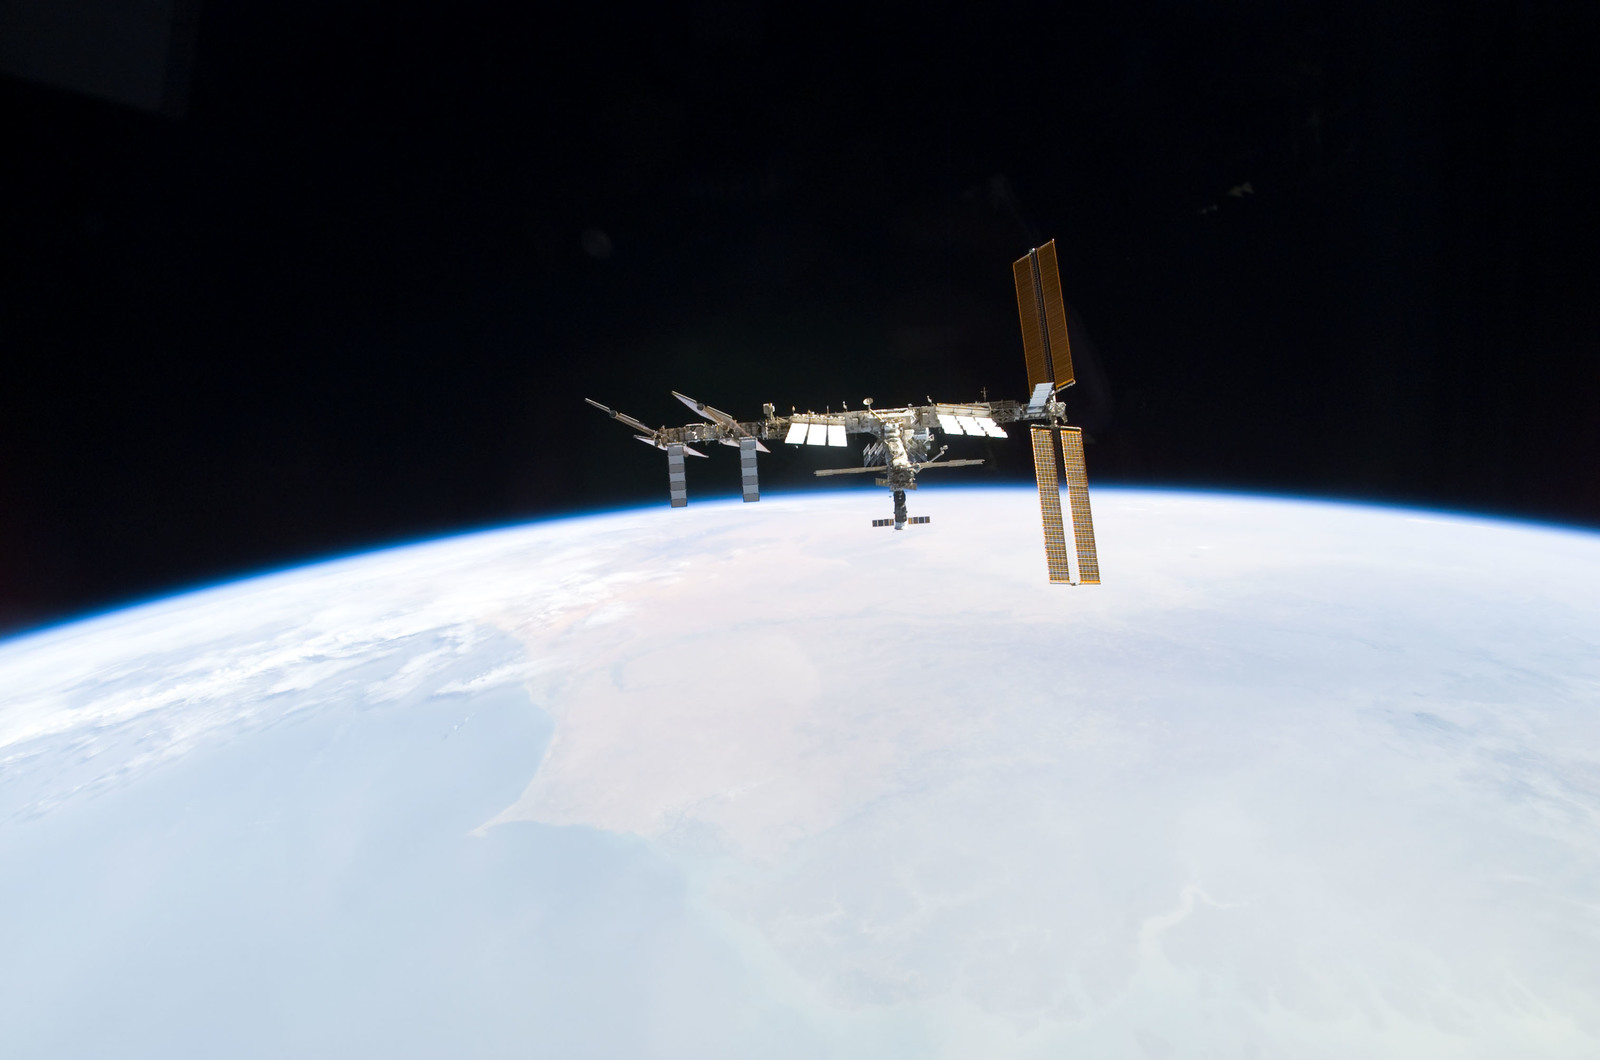 S122E010970 - STS-122 - View of ISS after STS-122 Undocking